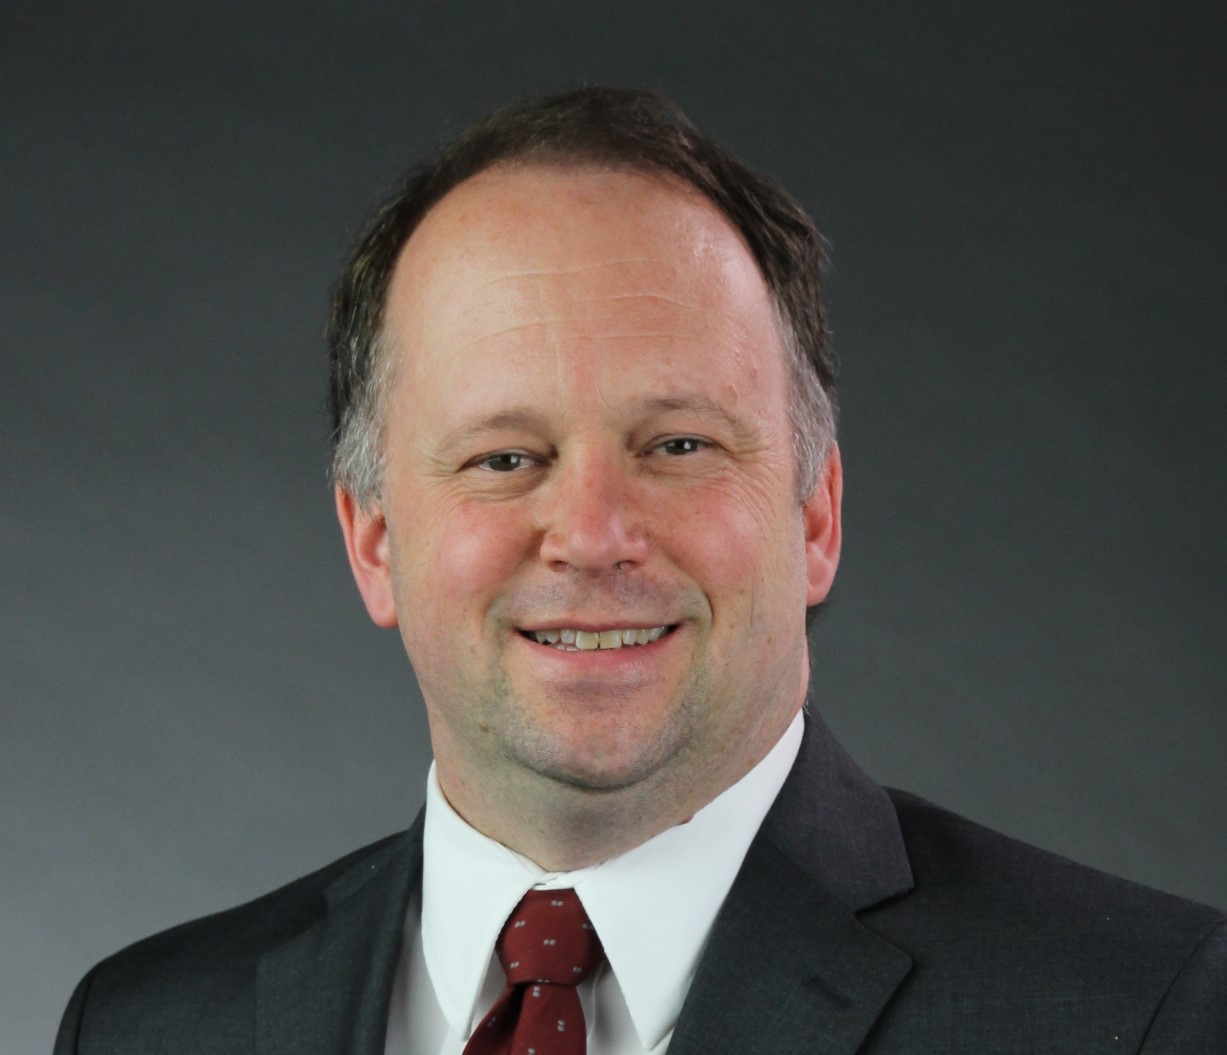 Descriptive image for Professor Jeff Hollingsworth named Vice President and Chief Information Officer of the University